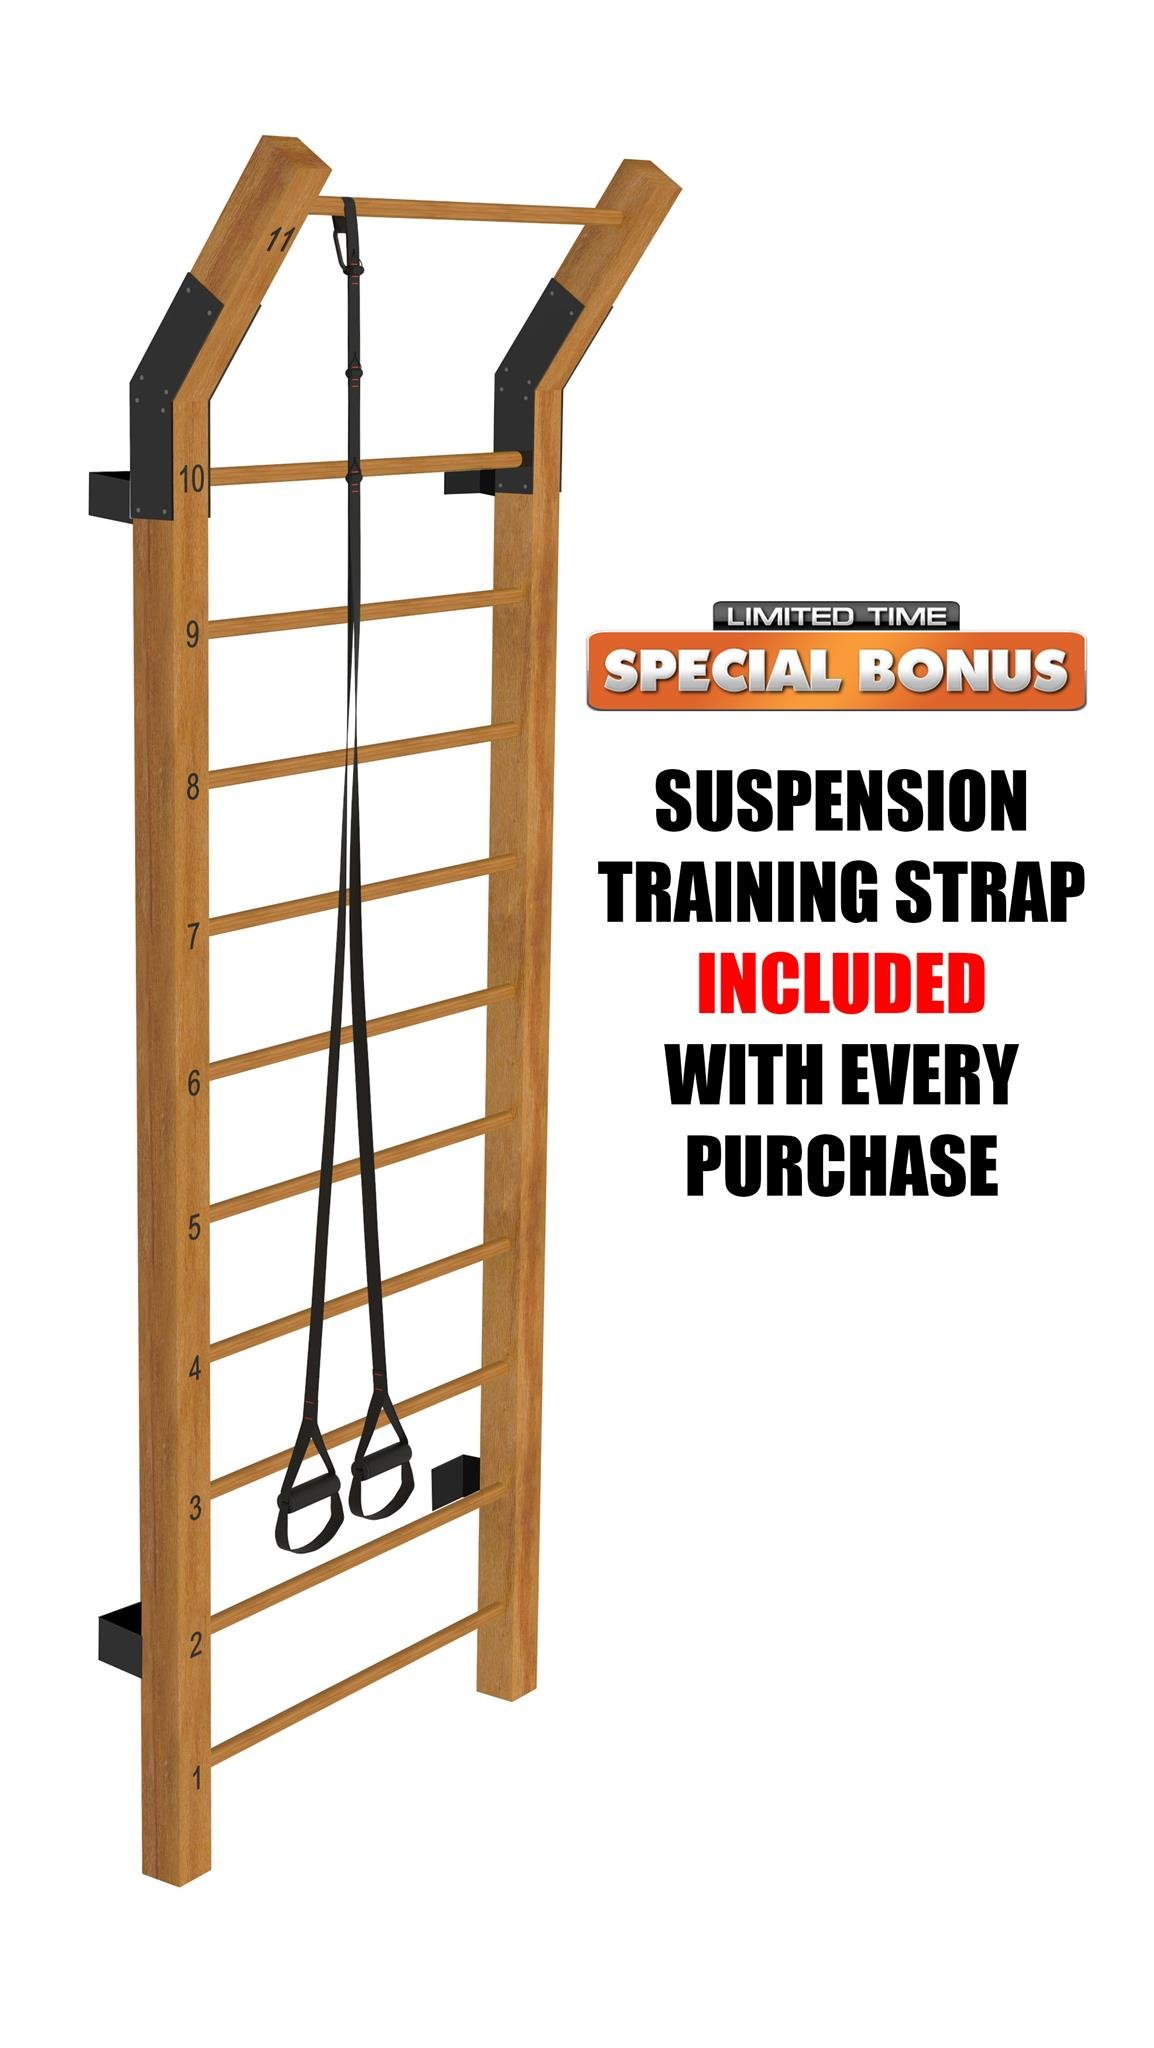 Limitless XVP Fitness Swedish Ladder Wood Stall Bar Suspension Trainer - Physical Therapy & Gymnastics Ladder w/ 11 Strategic Rods - Ideal for Back Pain Scoliosis Exercise Equipment & Range of Motion